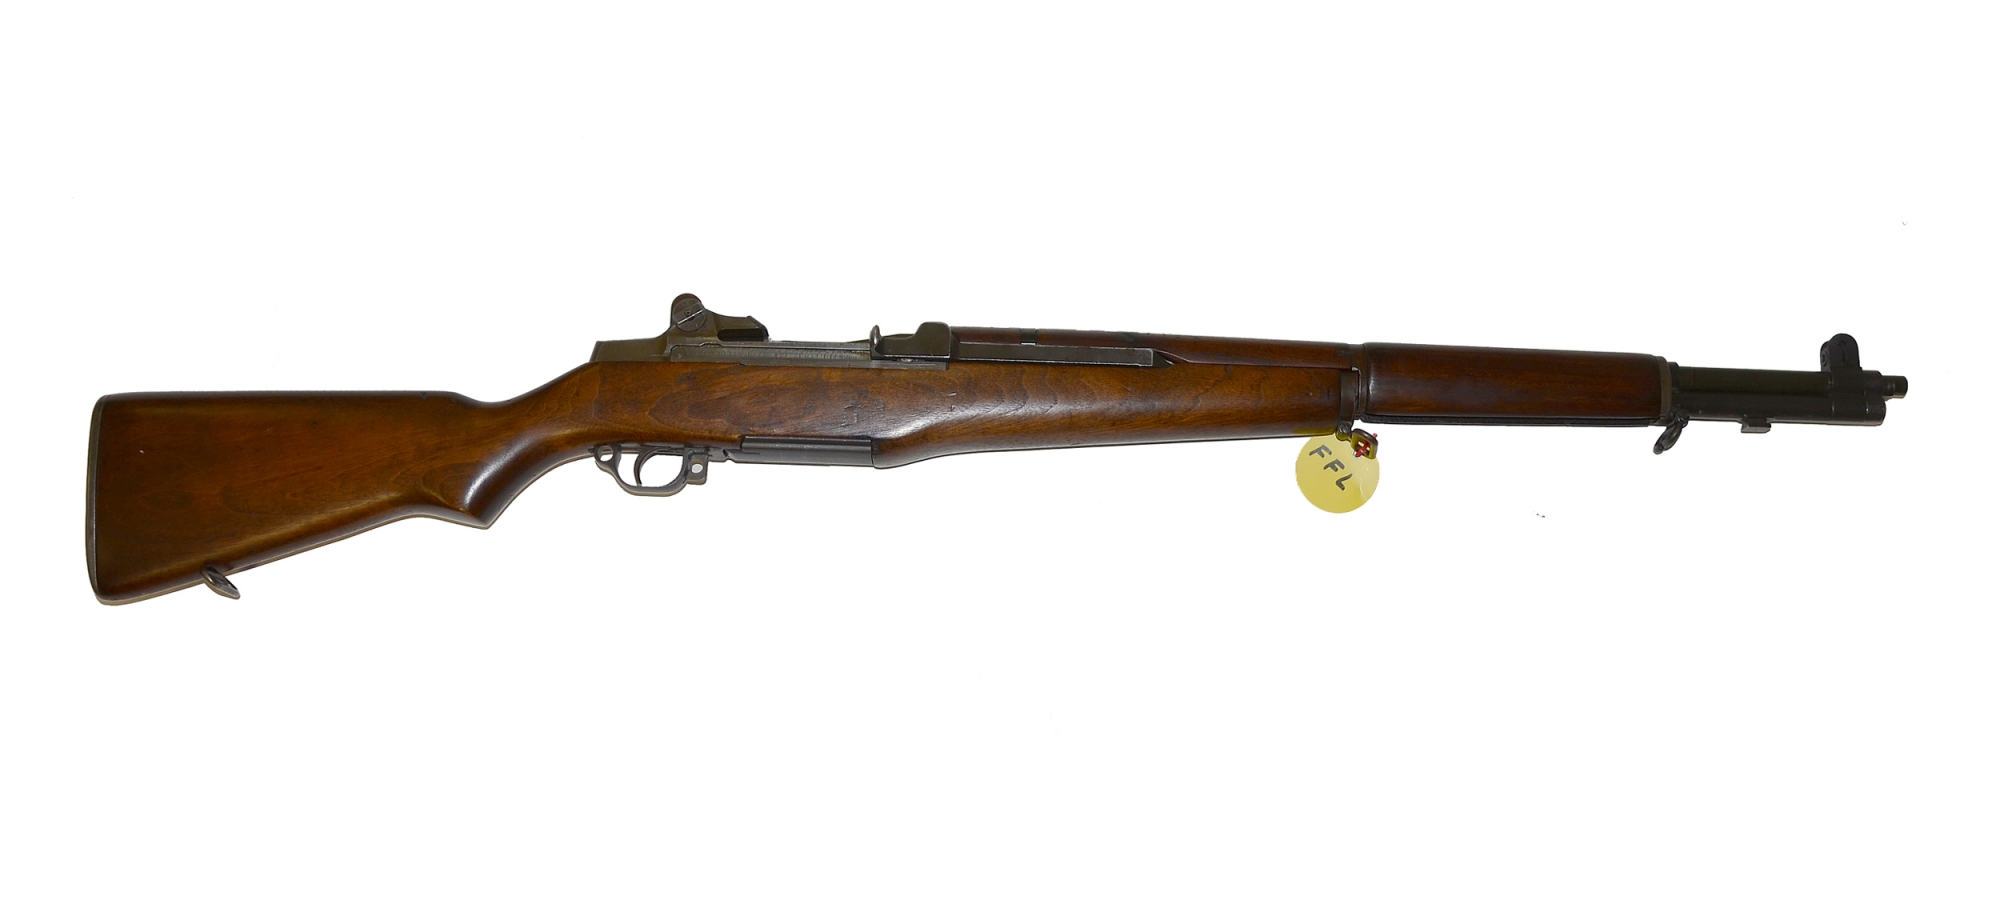 NEAR MINT SPRINGFIELD ARMORY M-1 GARAND SERVICE RIFLE FROM WWII